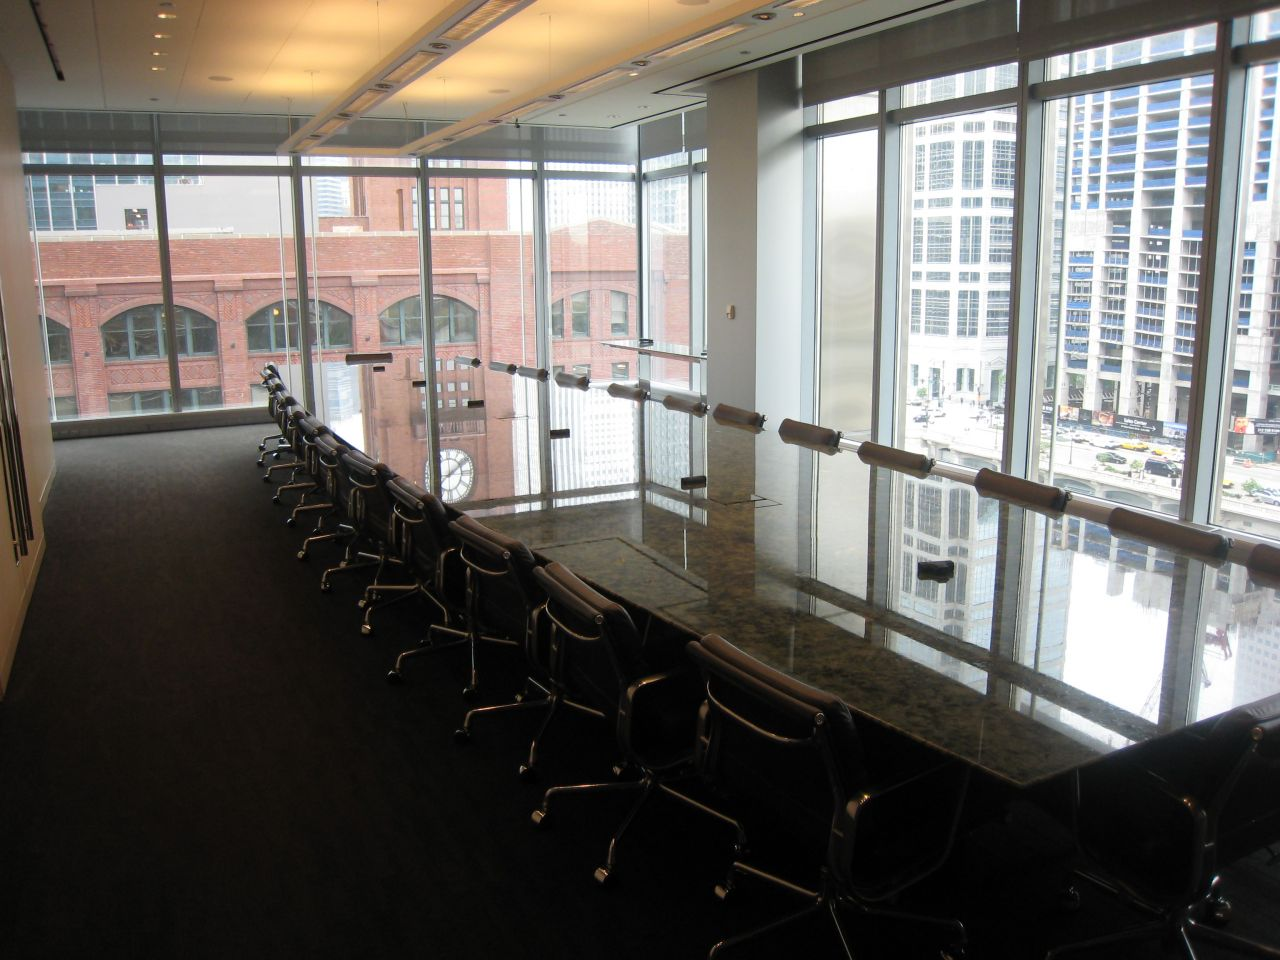 The 7th floor boardroom.